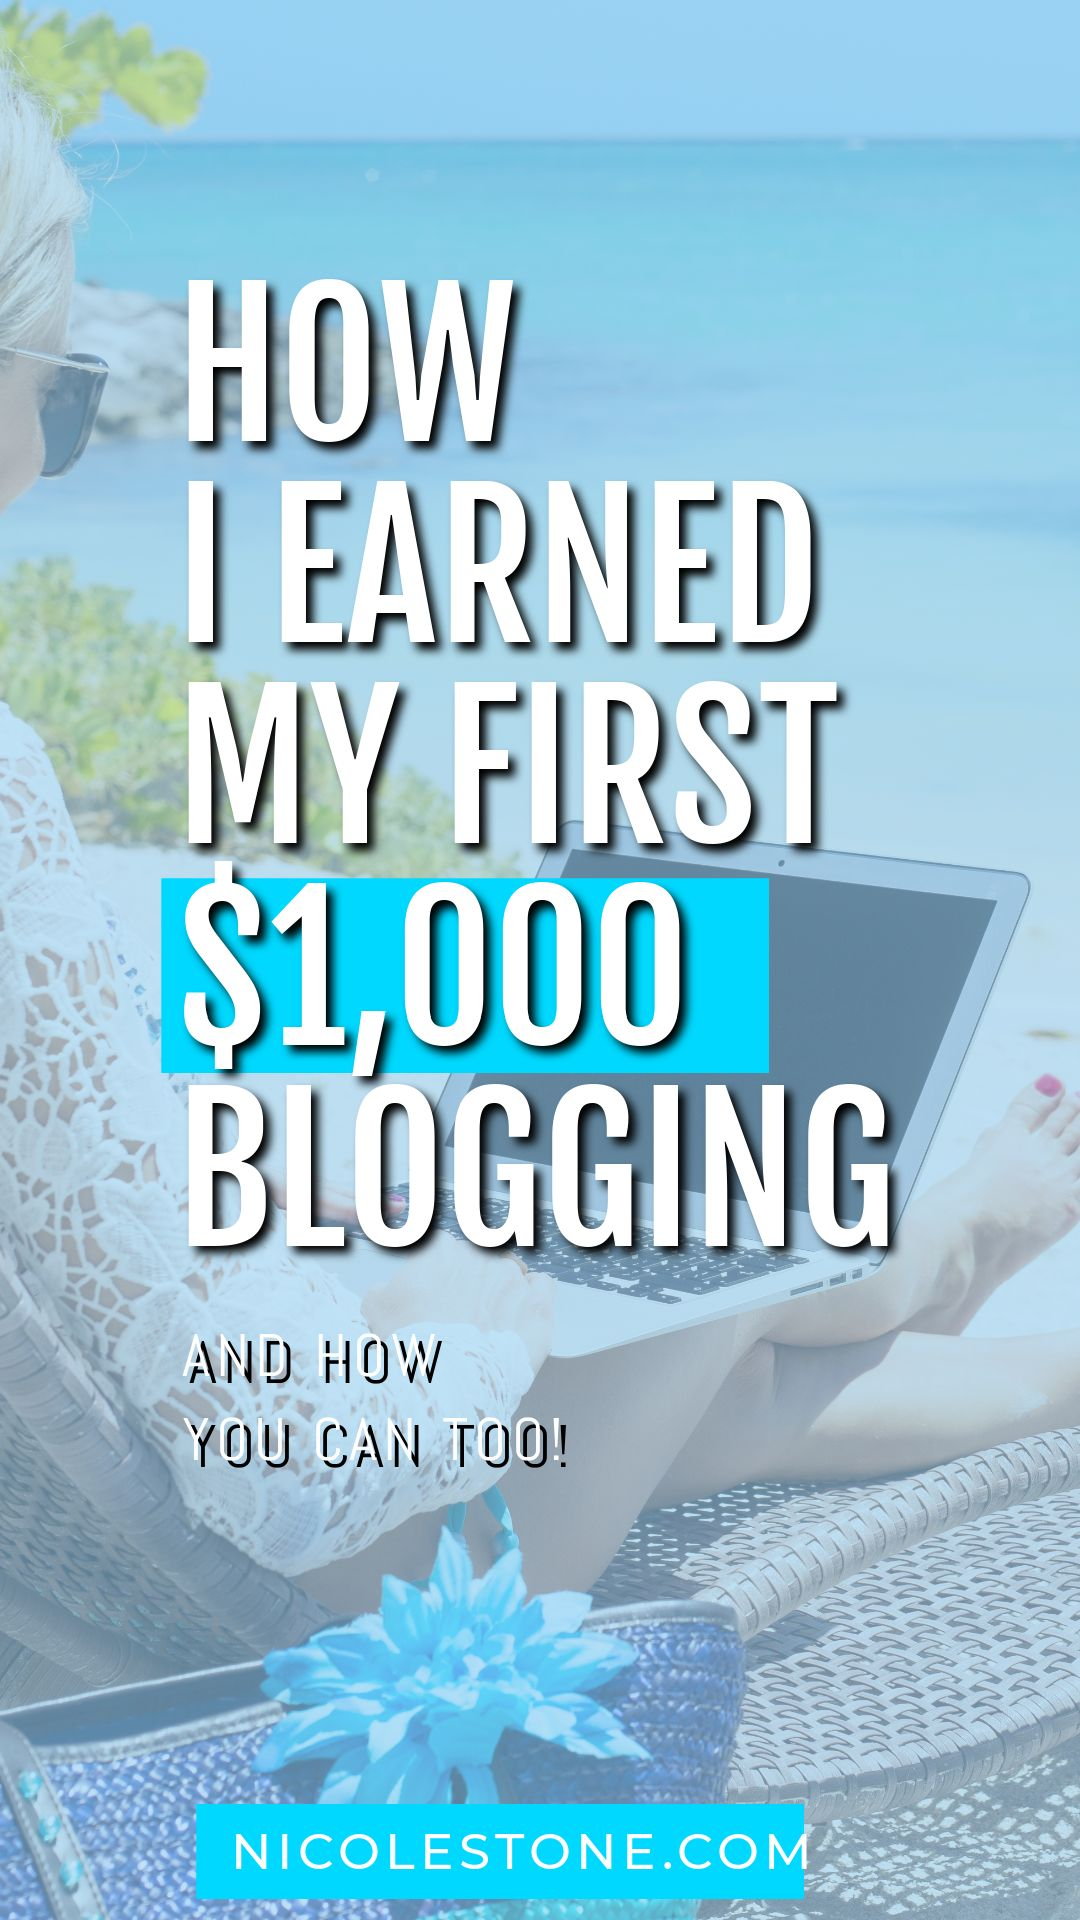 How I made my first $1,000 blogging. I go through my story, and my steps, to building and making my own profitable blog. Real steps you can include too! Spoiler: I now blog full-time #blogging #marketing #soicalmedia